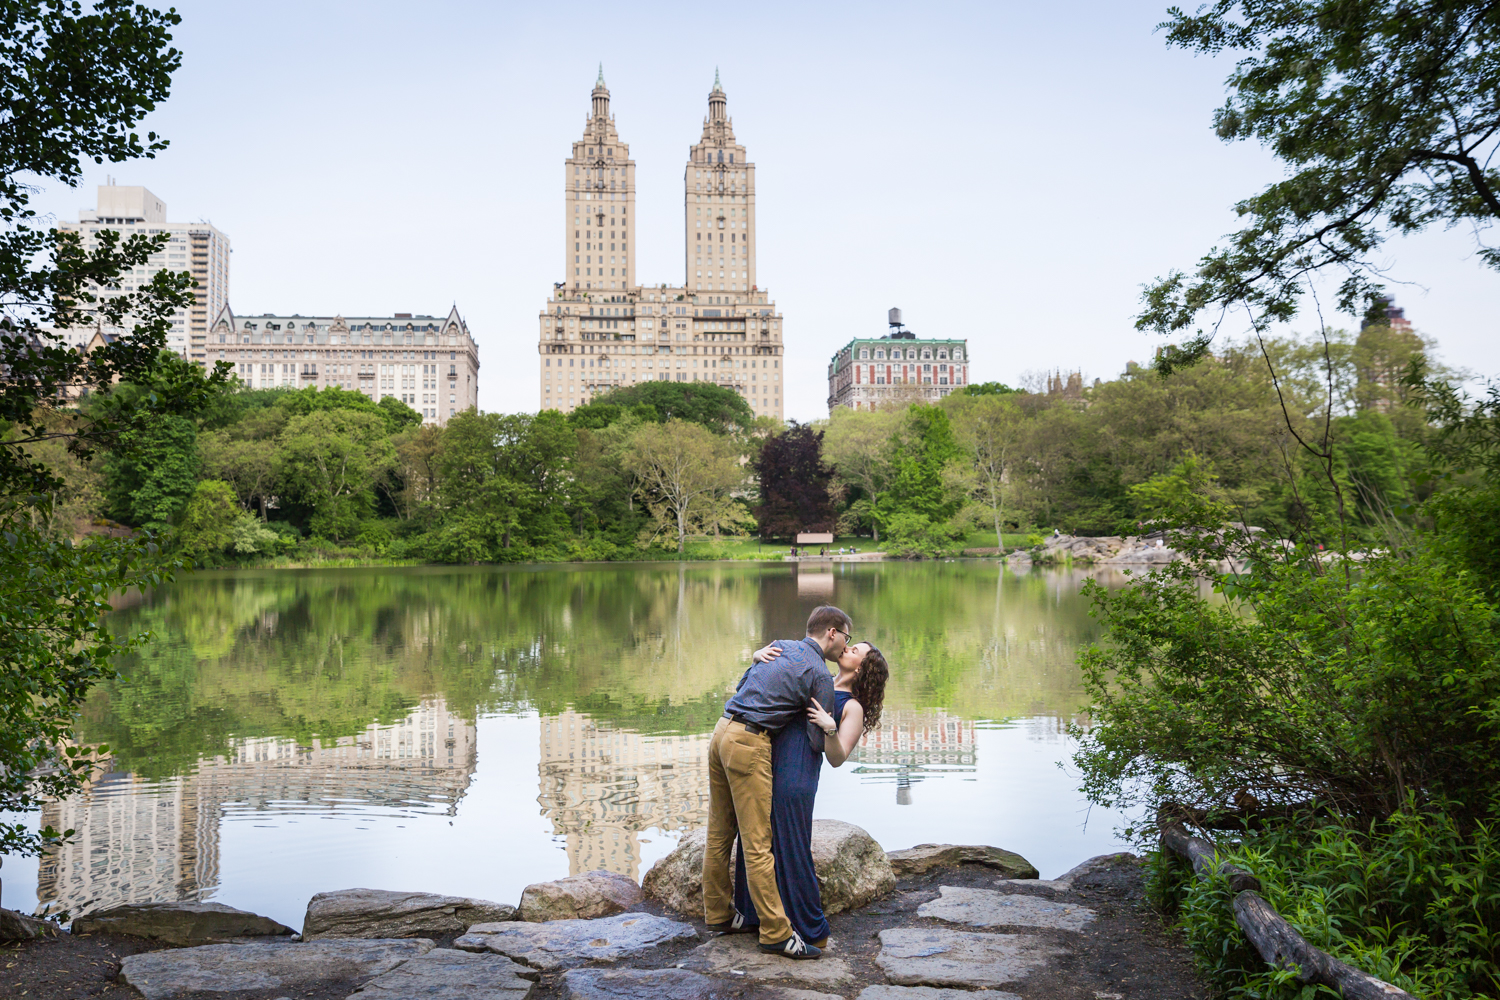 Couple dancing in Central Park lake viewing area